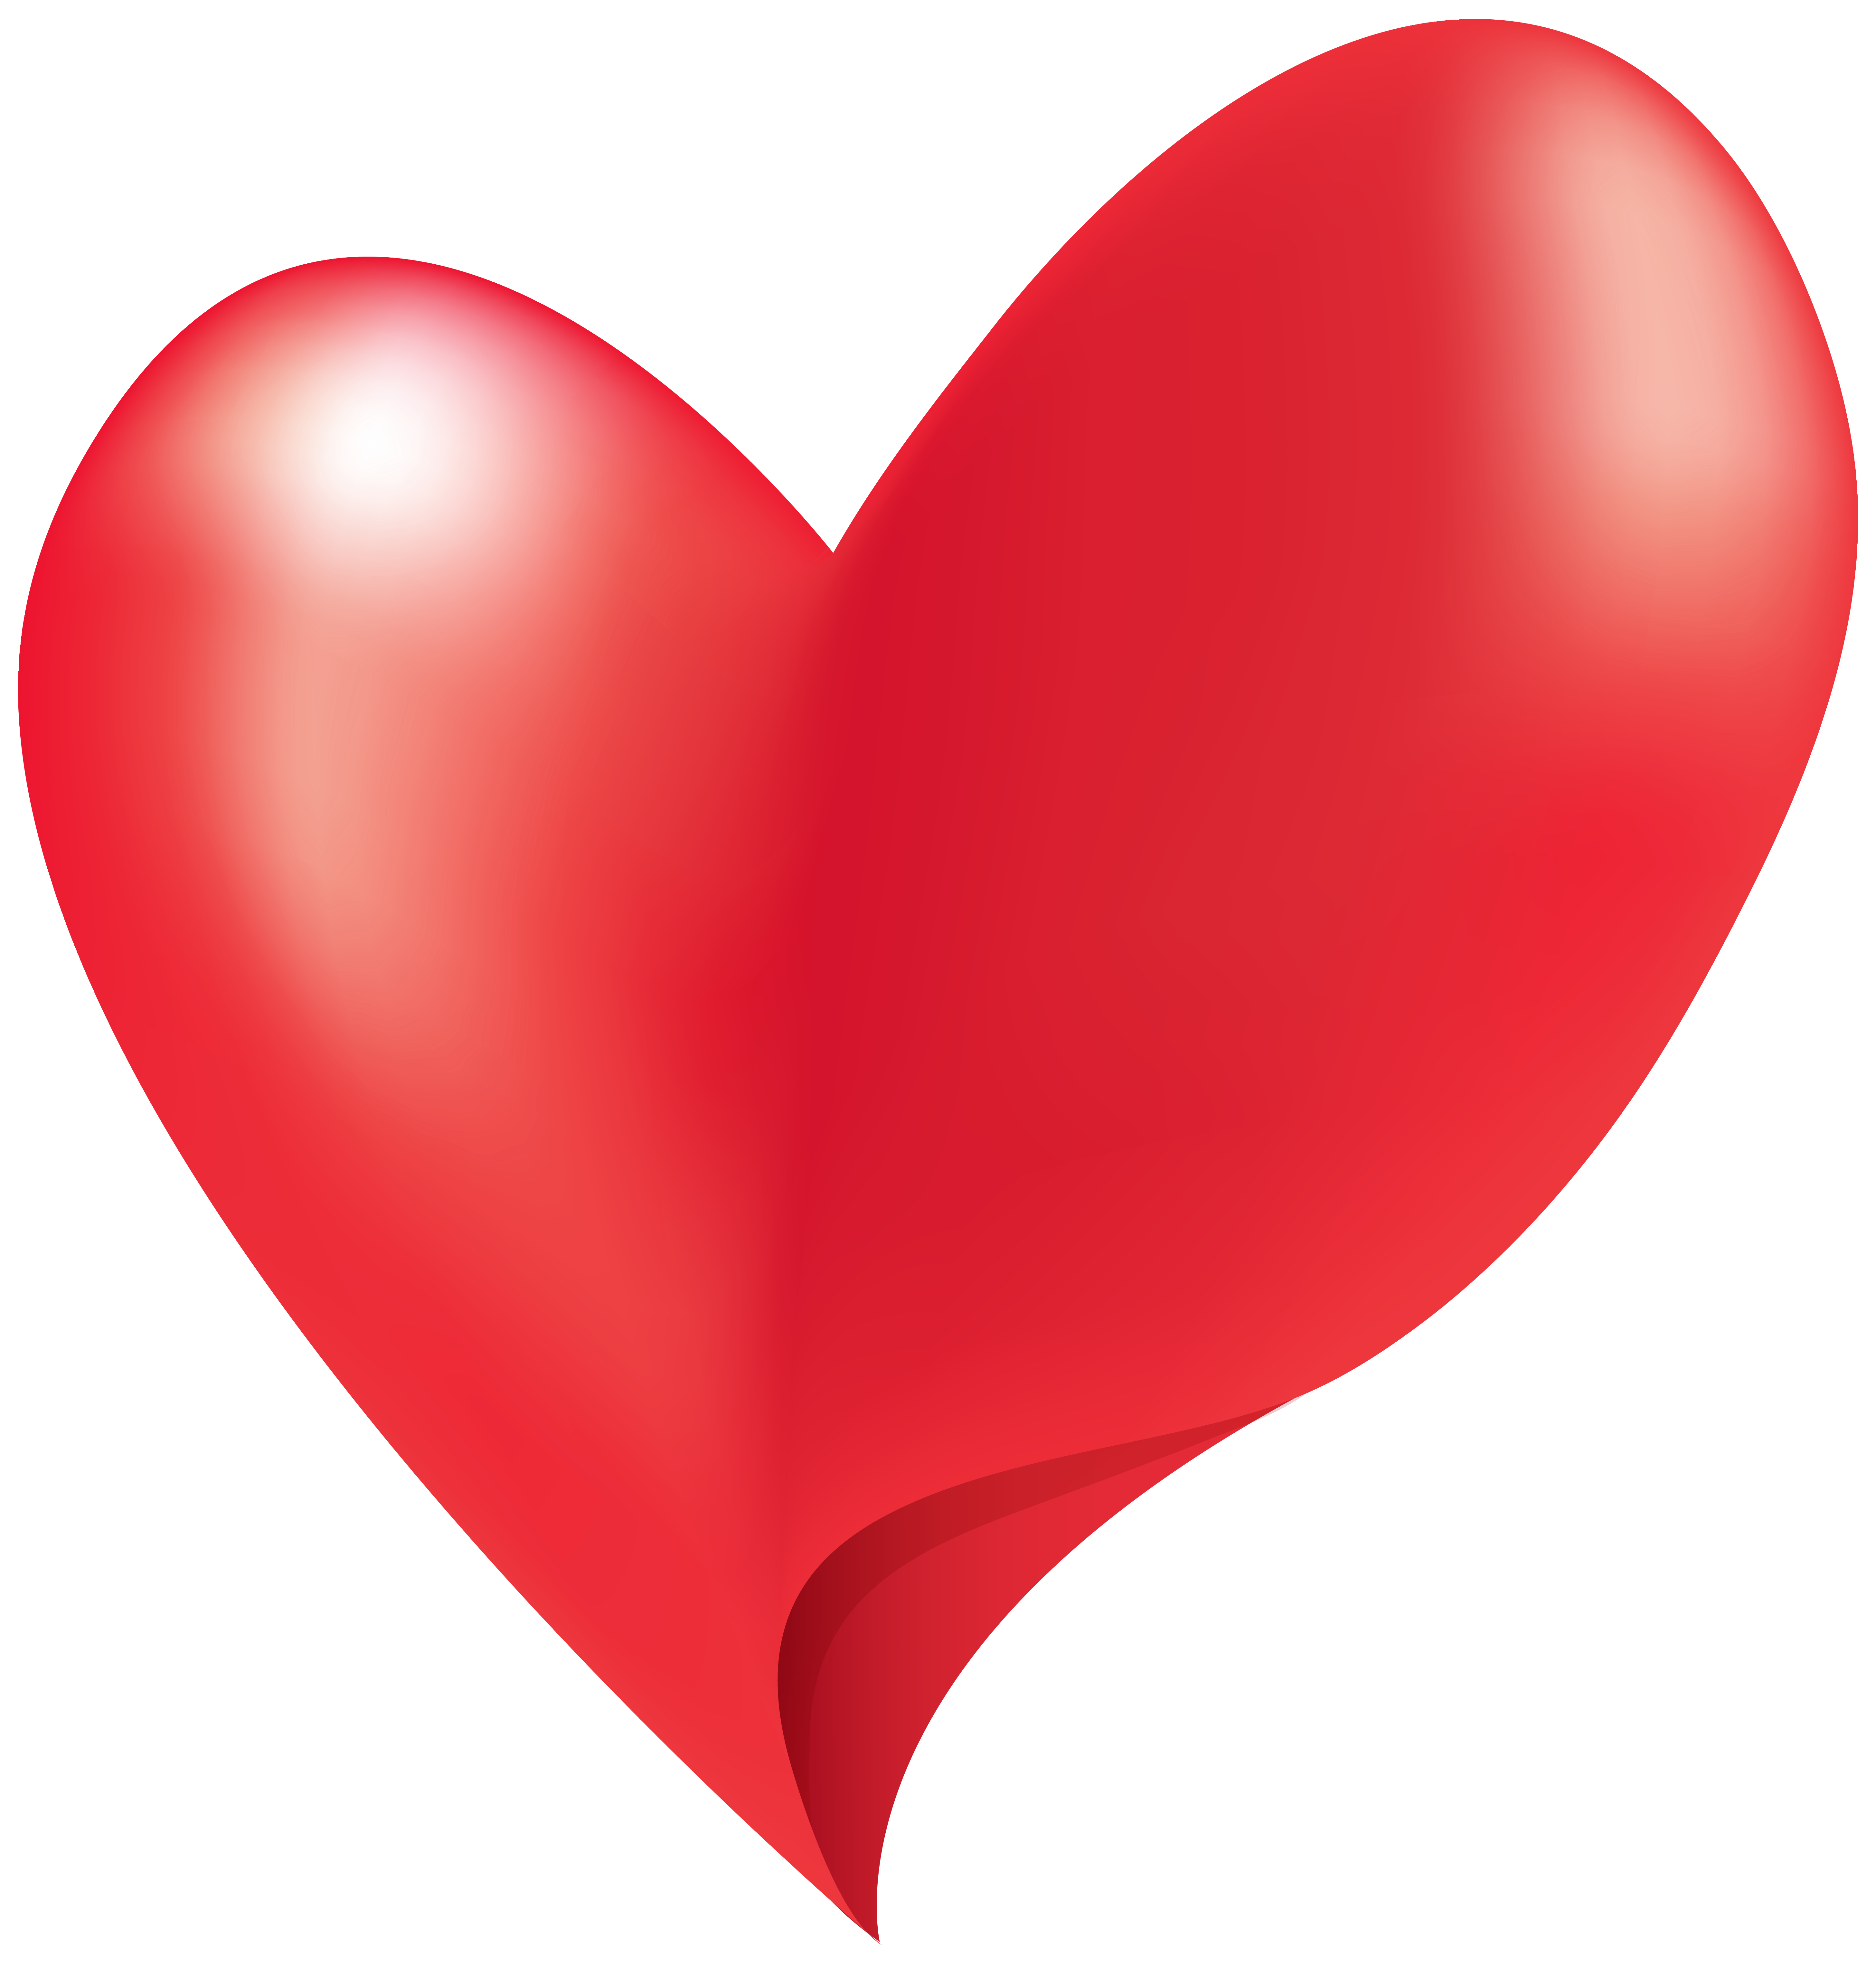 Heart clipart png clip art royalty free library Hearts On Fire Clipart at GetDrawings.com | Free for personal use ... clip art royalty free library